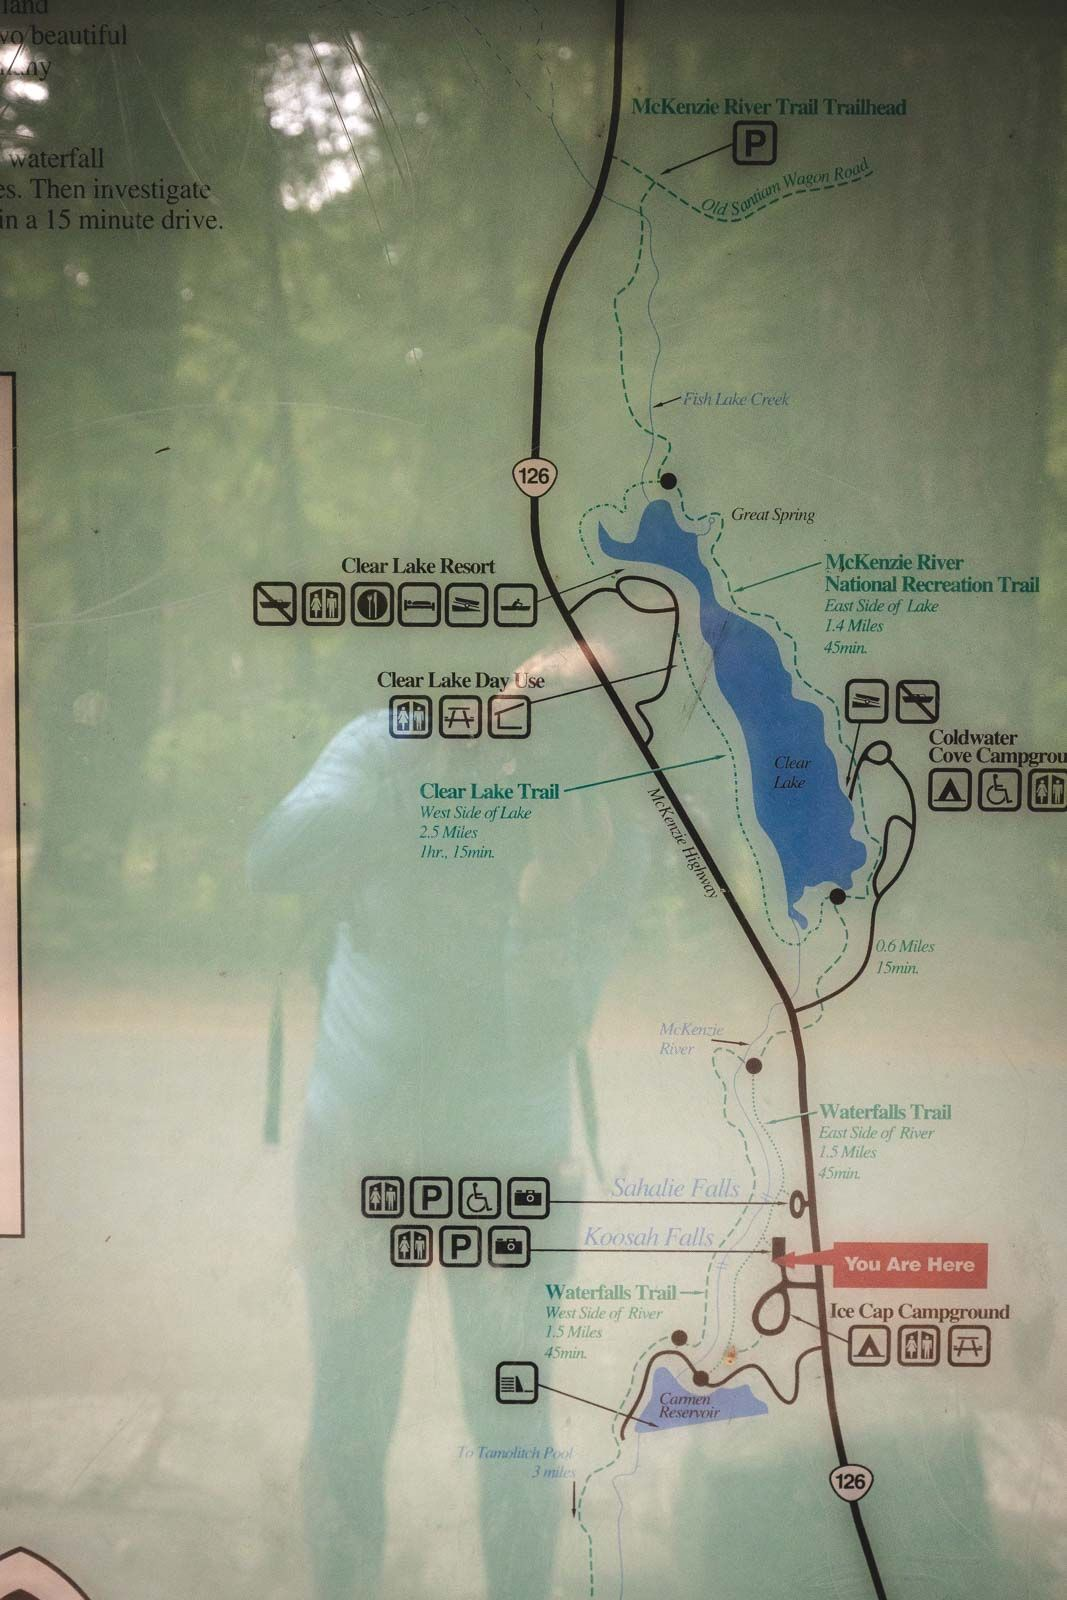 Map for The McKenzie River Trail with reflection of person